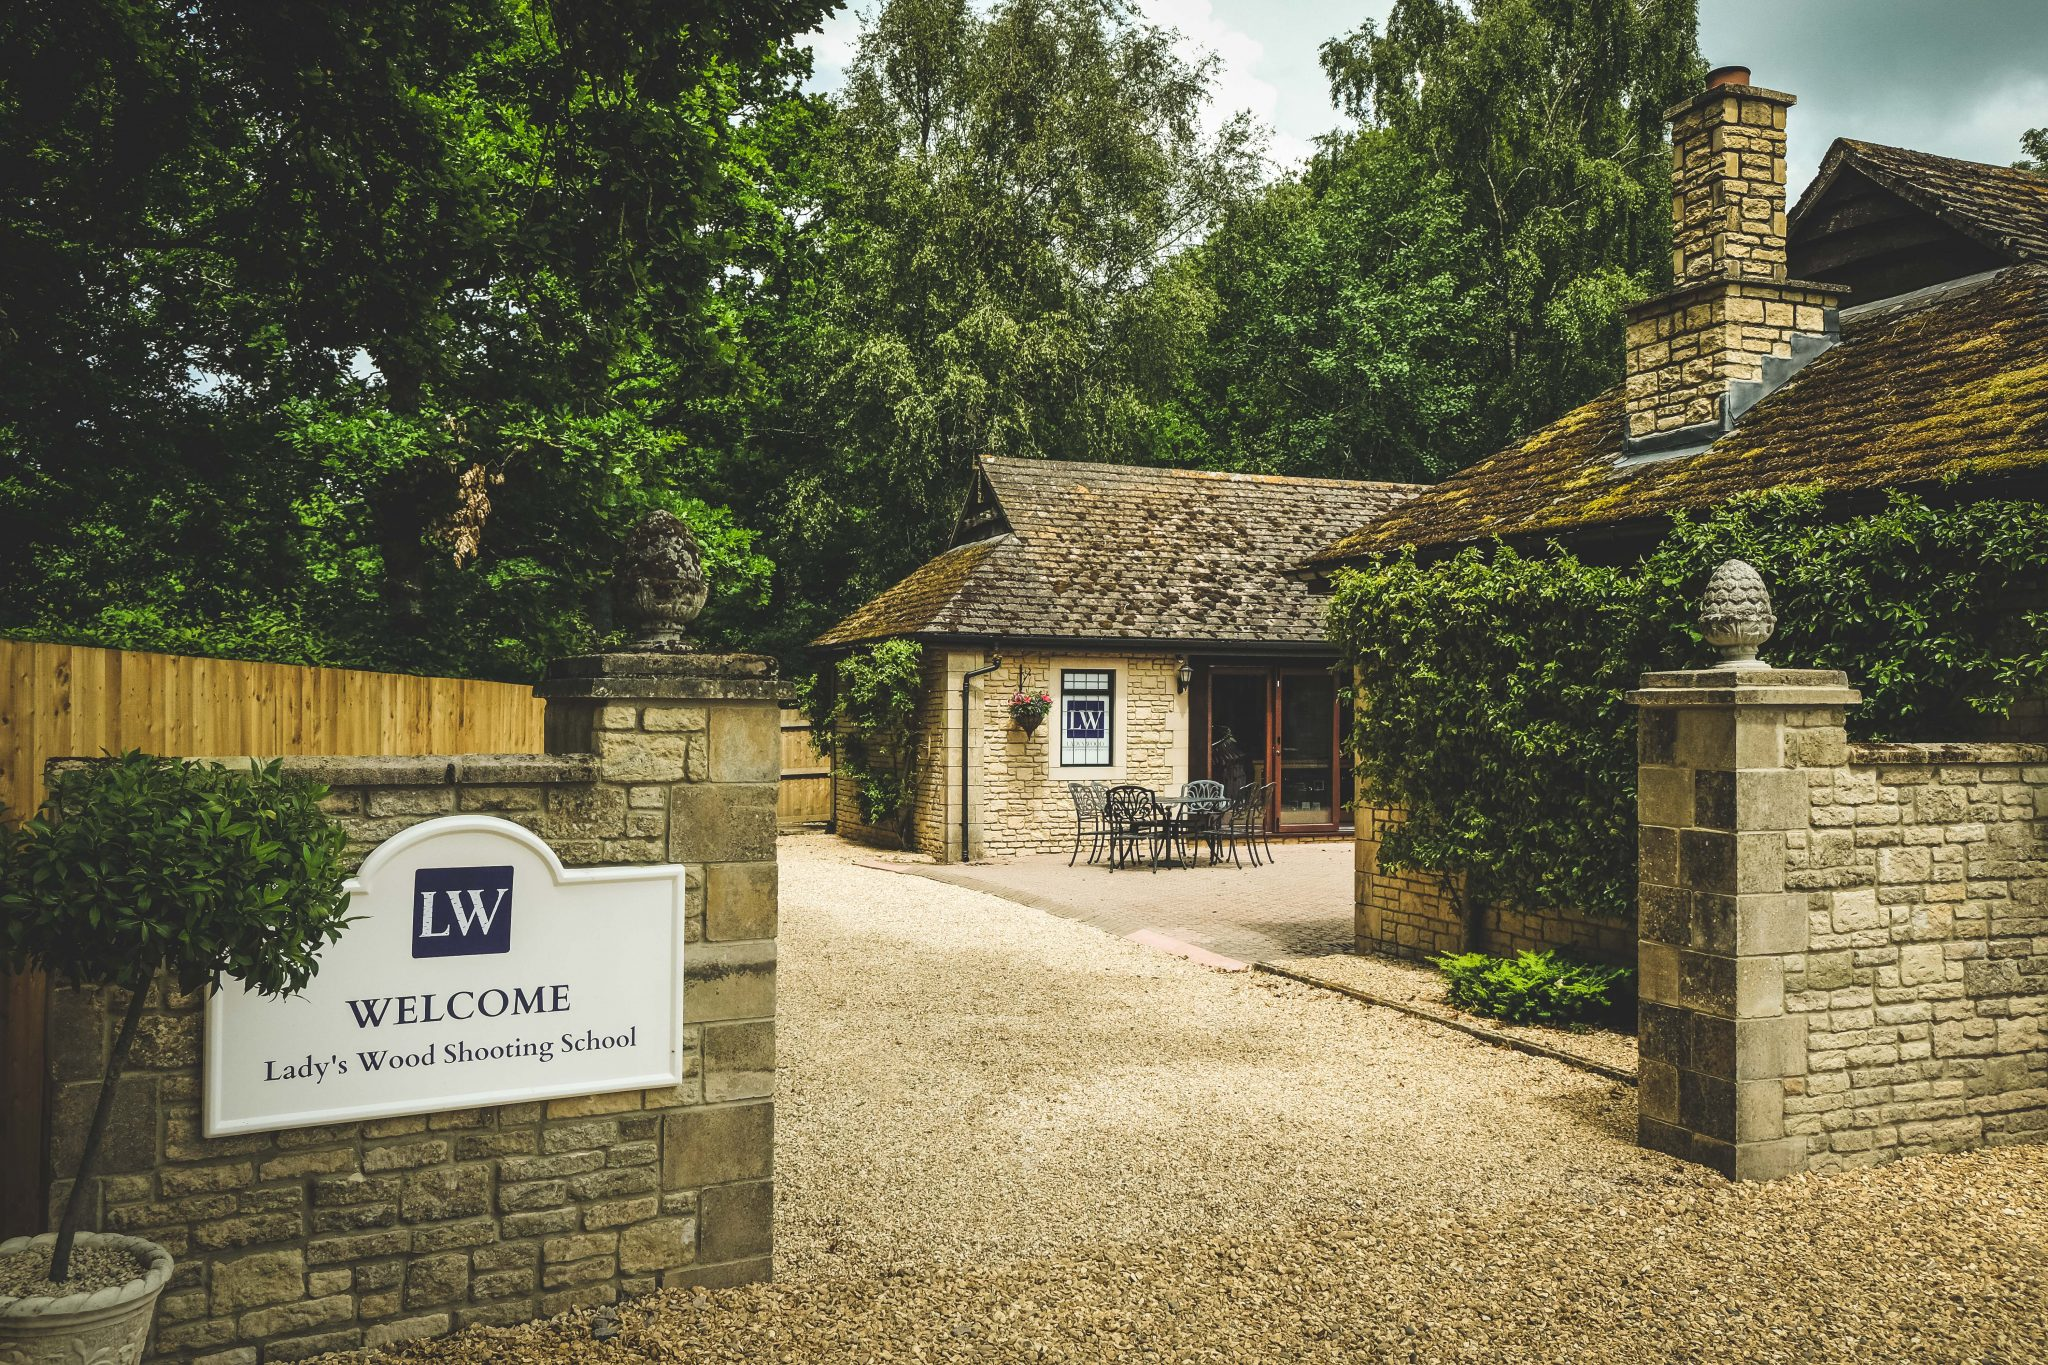 New entrance at Lady's Wood Shooting School